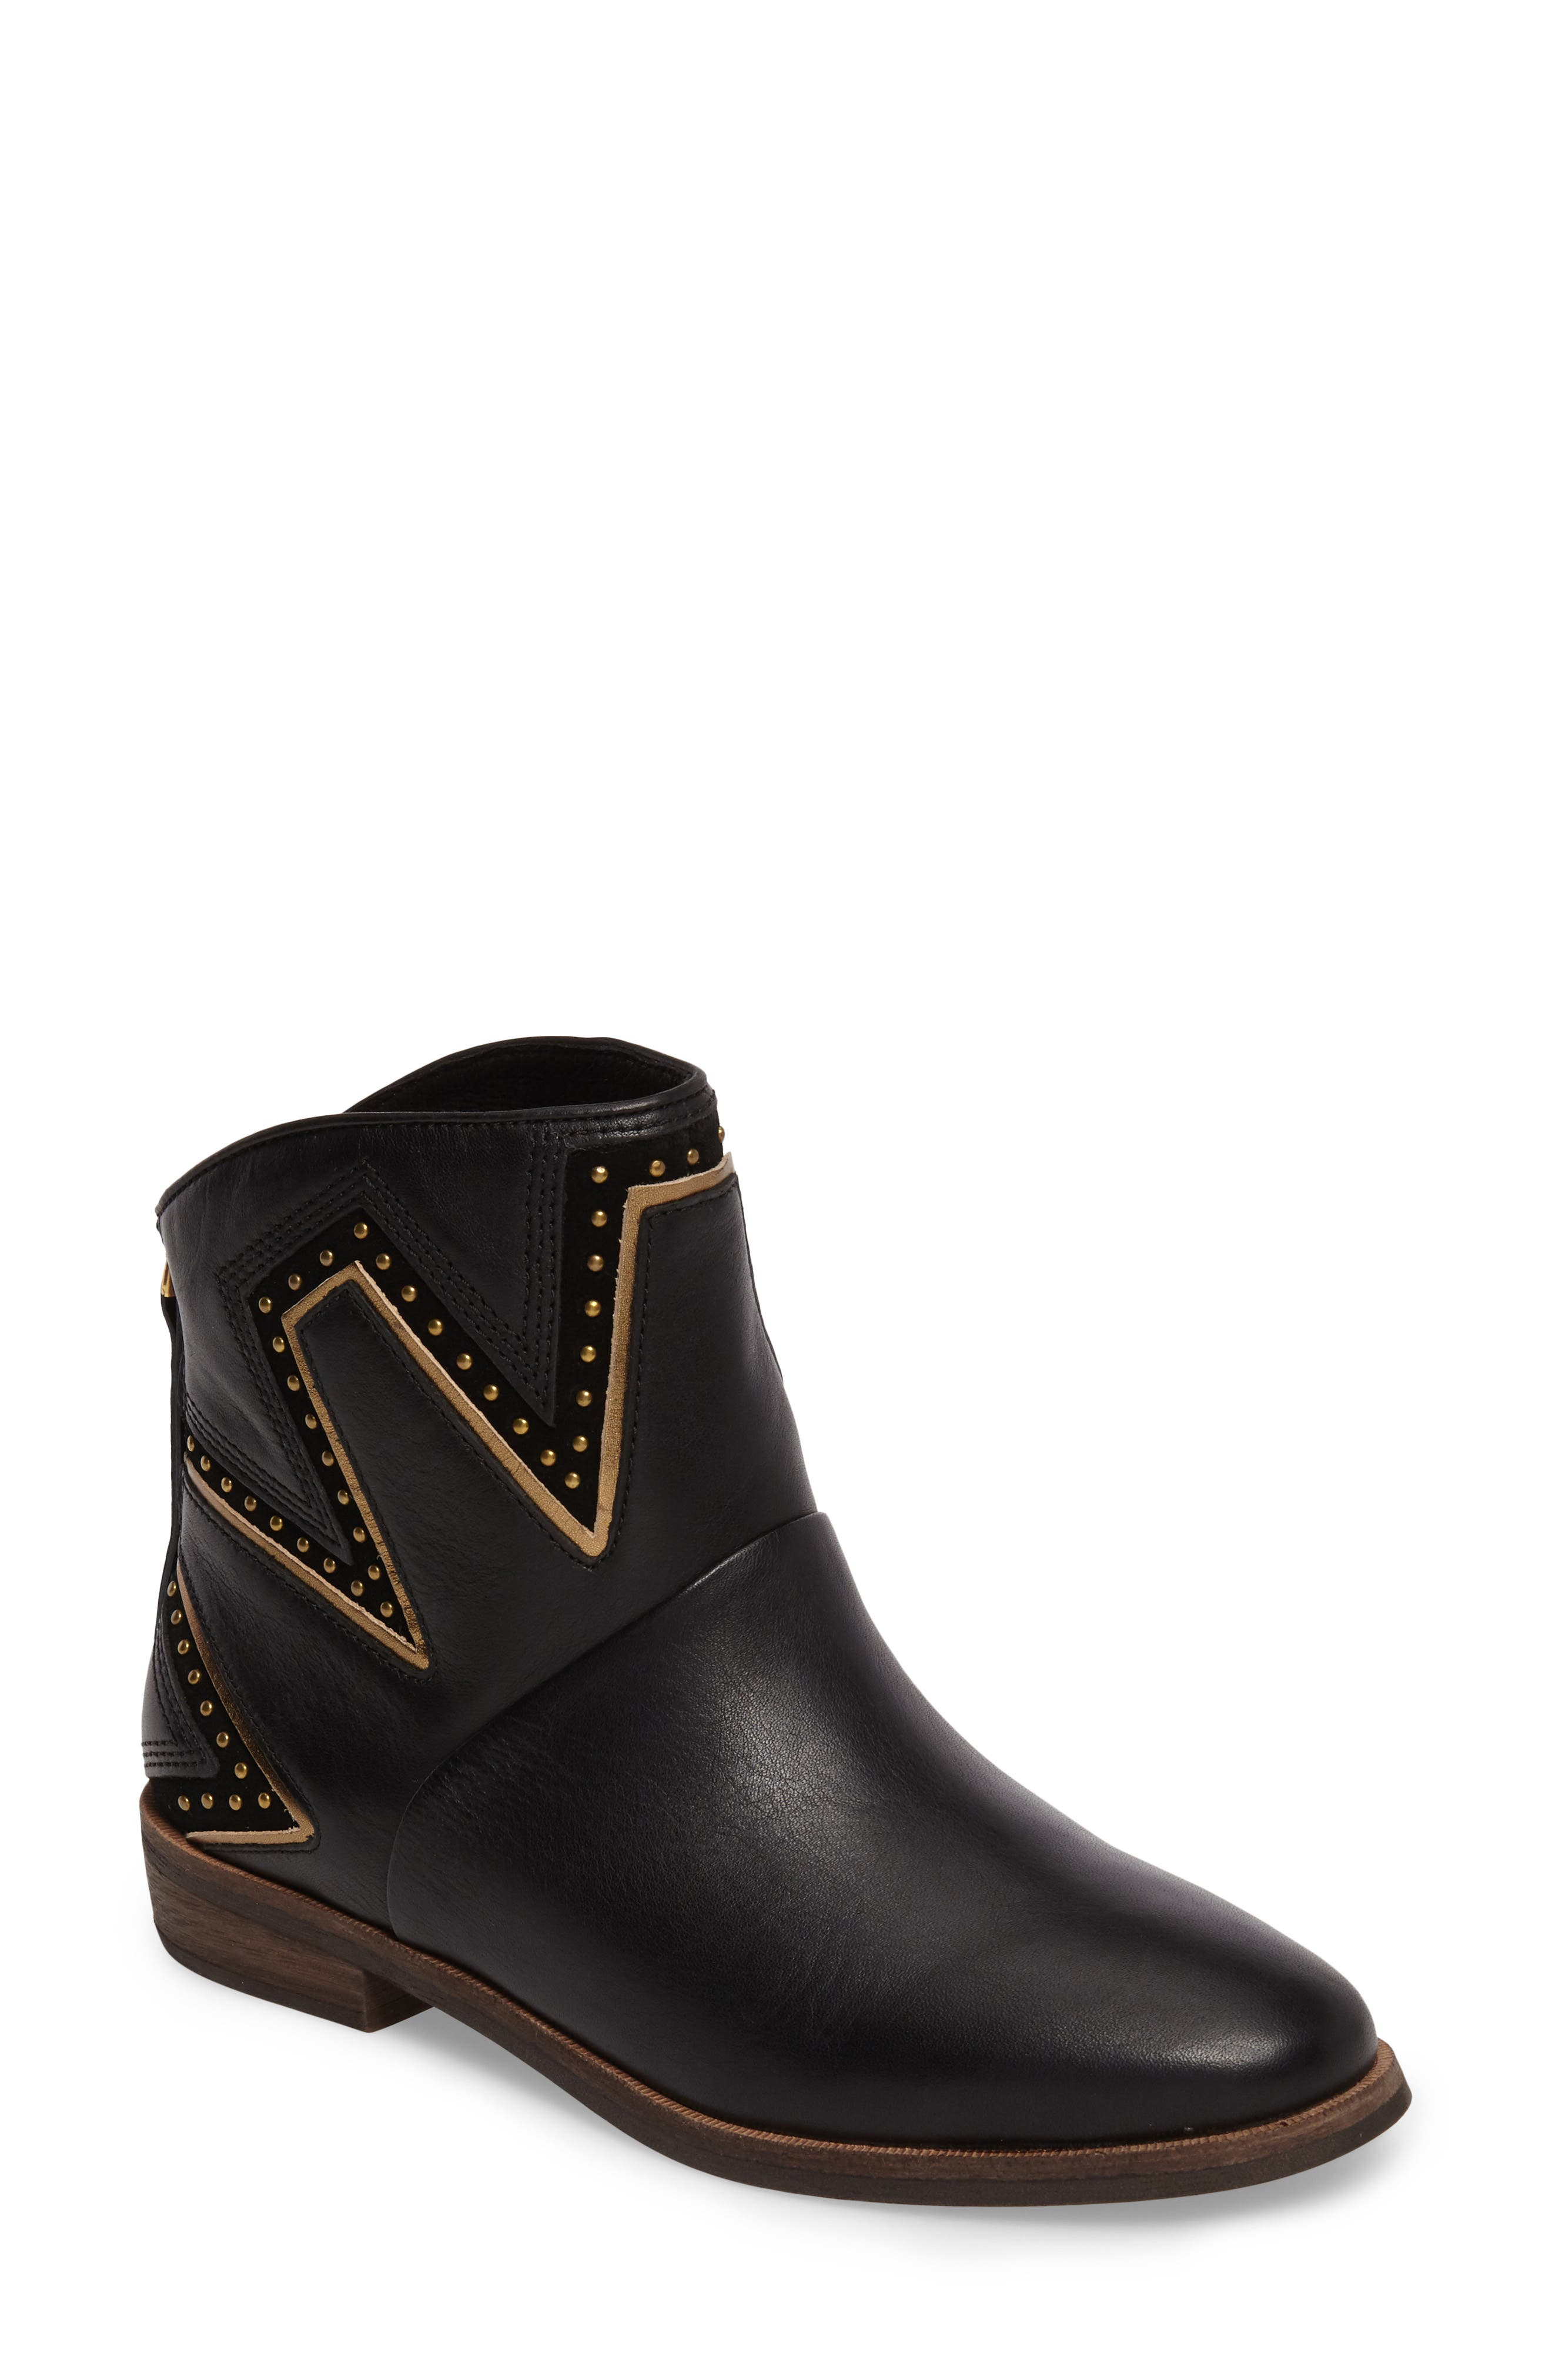 Main Image - UGG® Lars Studded Bootie (Women)